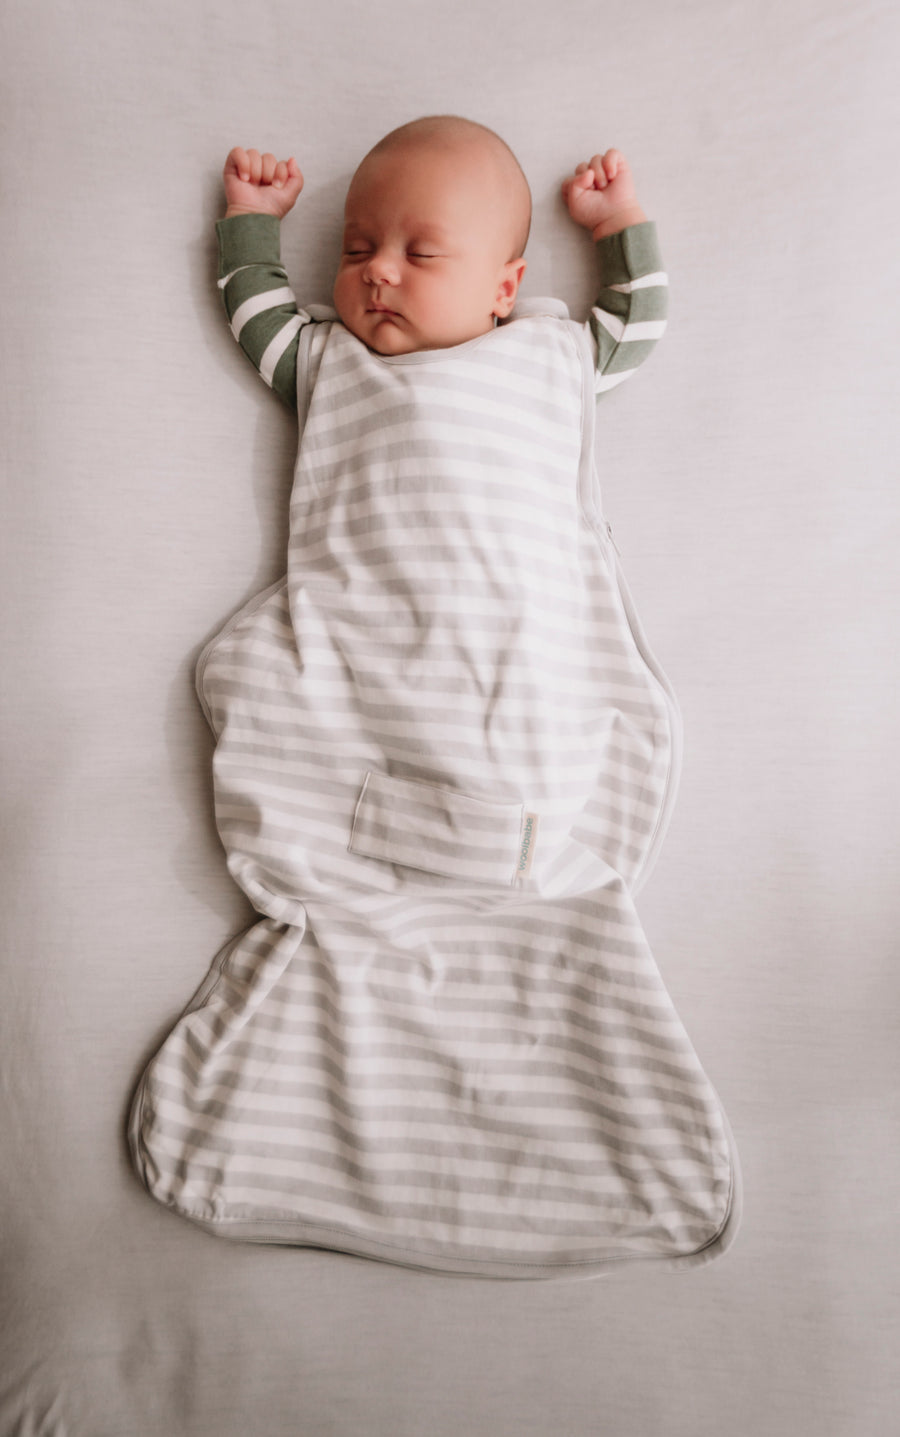 Woolbabe 3 Season Front Zip Sleeping Bag 3-24 months